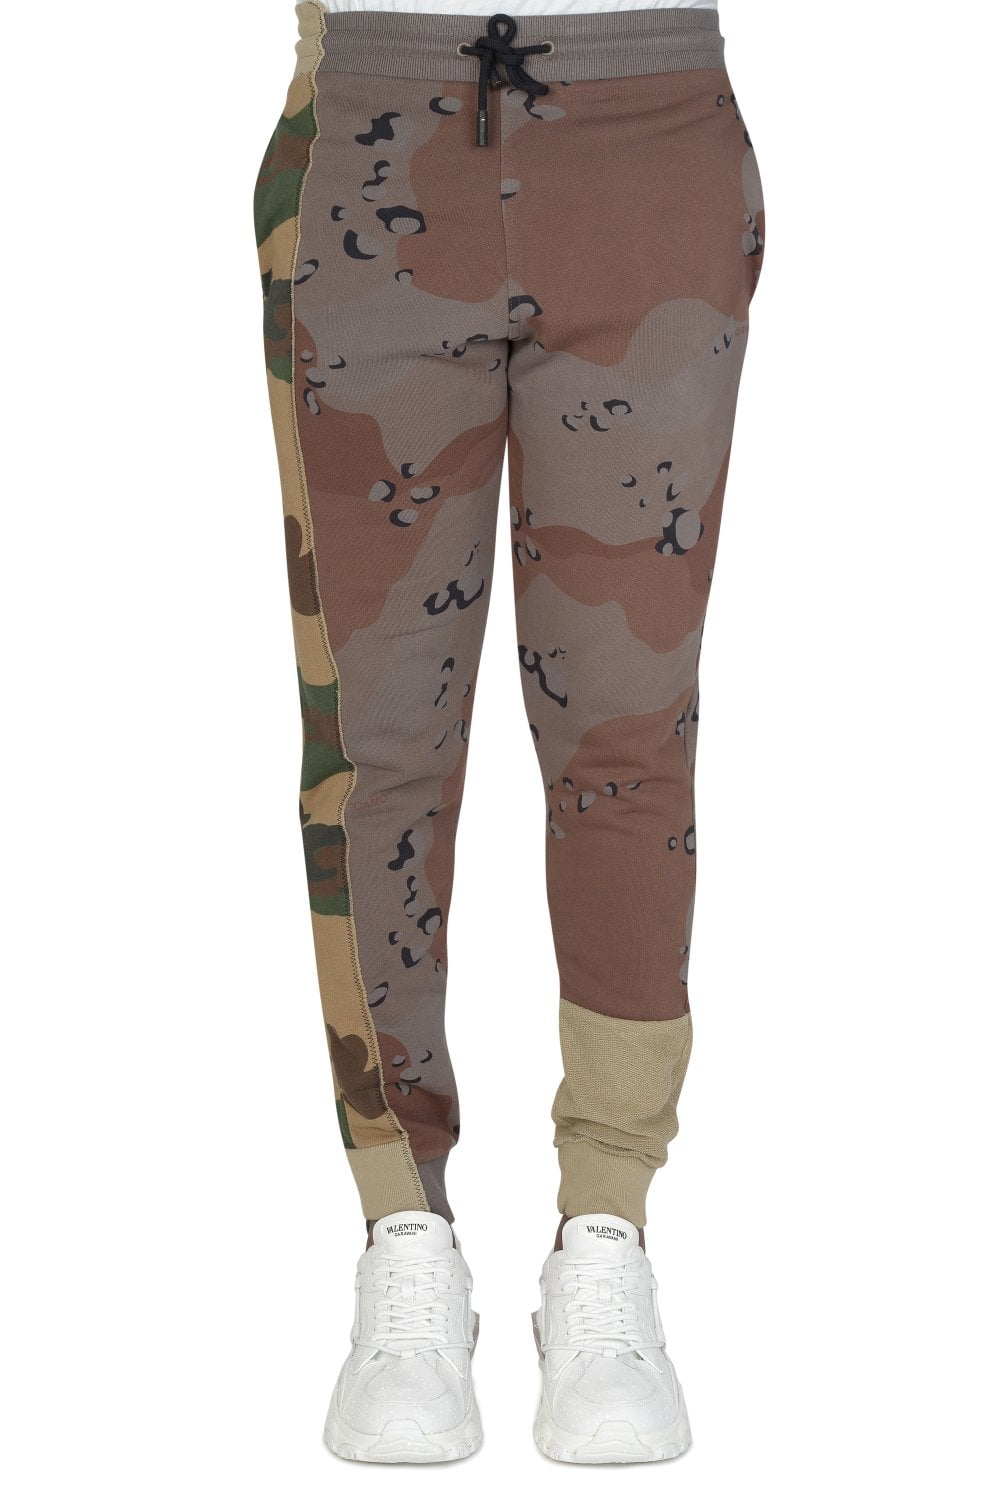 fe10d728 OFF WHITE Off White Reconstructed Camouflage Joggers - Clothing from ...